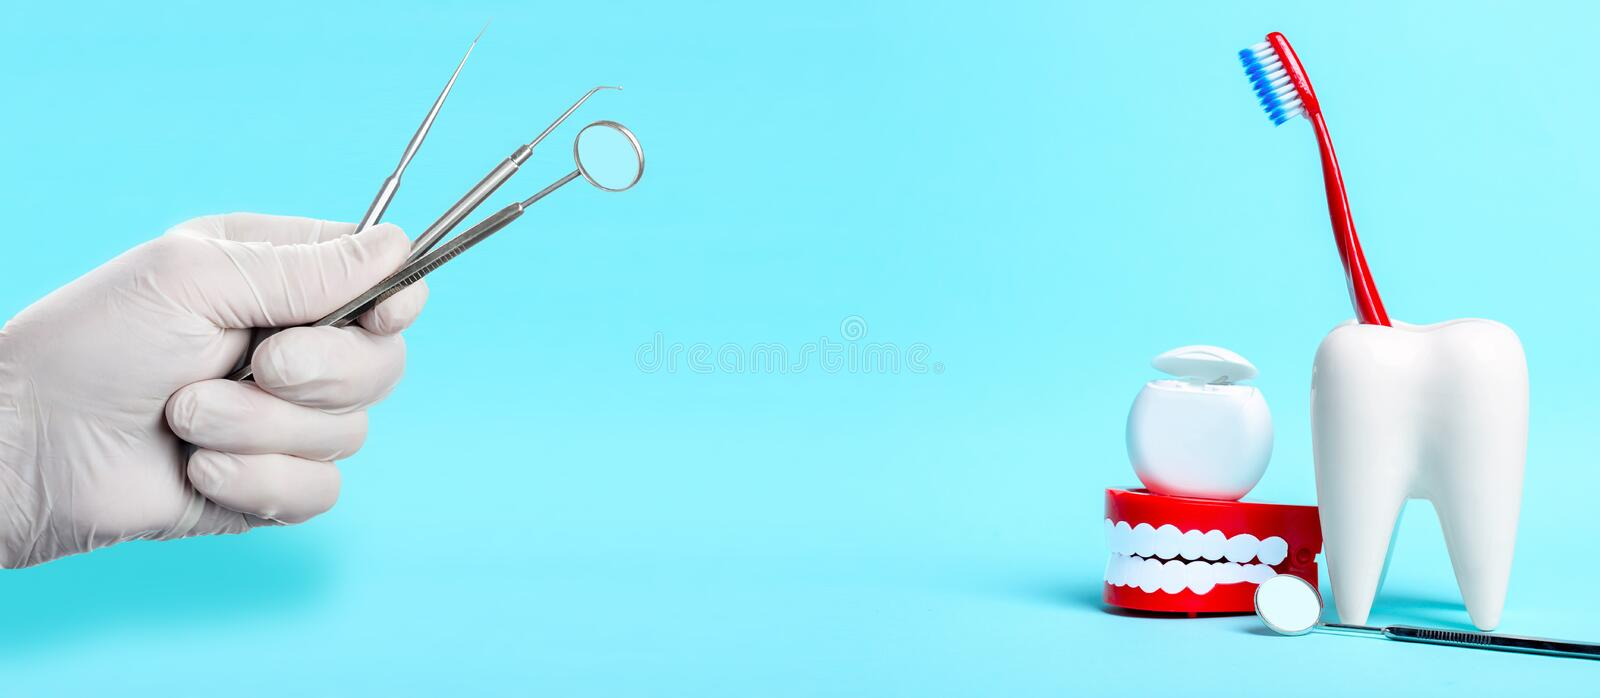 Dental health and teethcare concept. Dental mirror, human jaw model and dental floss near white tooth model with toothbrush. Instruments in doctors hand with stock photos